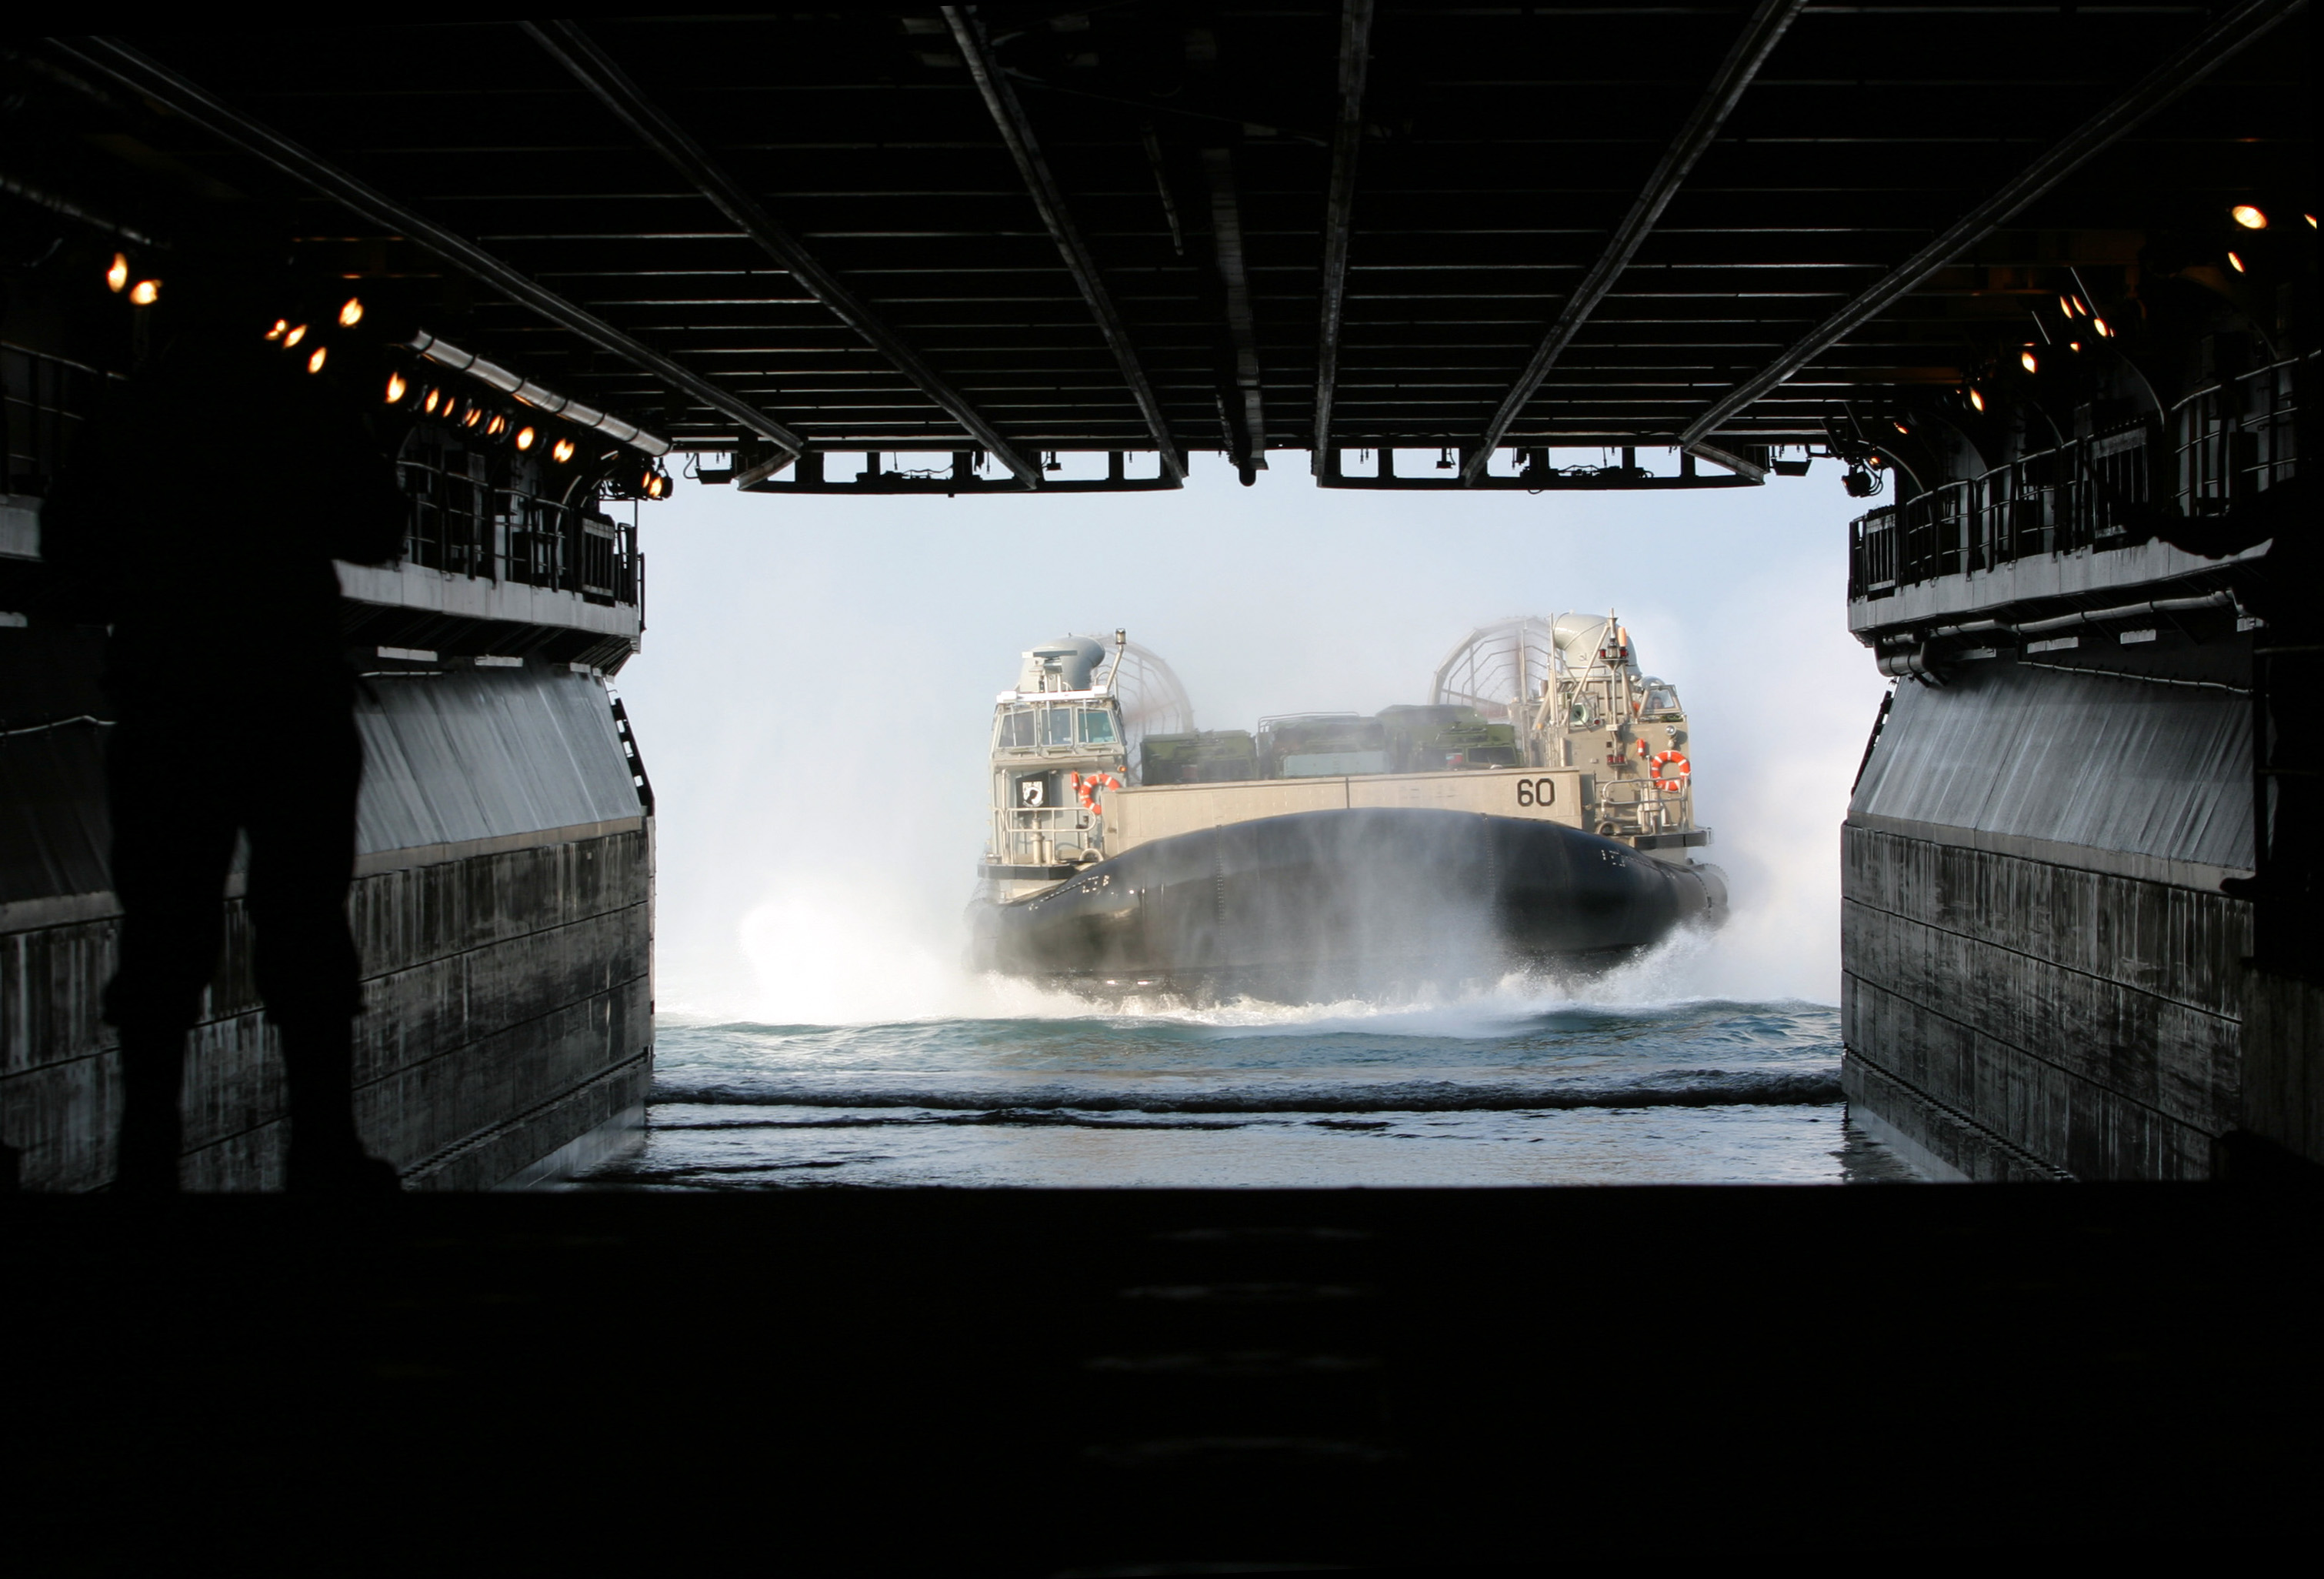 US Navy 050326-M-5900L-004 A Landing Craft, Air Cushion (LCAC), assigned to Assault Craft Unit Four (ACU-4), enters the well deck aboard the amphibious assault ship USS Kearsarge (LHD 3)